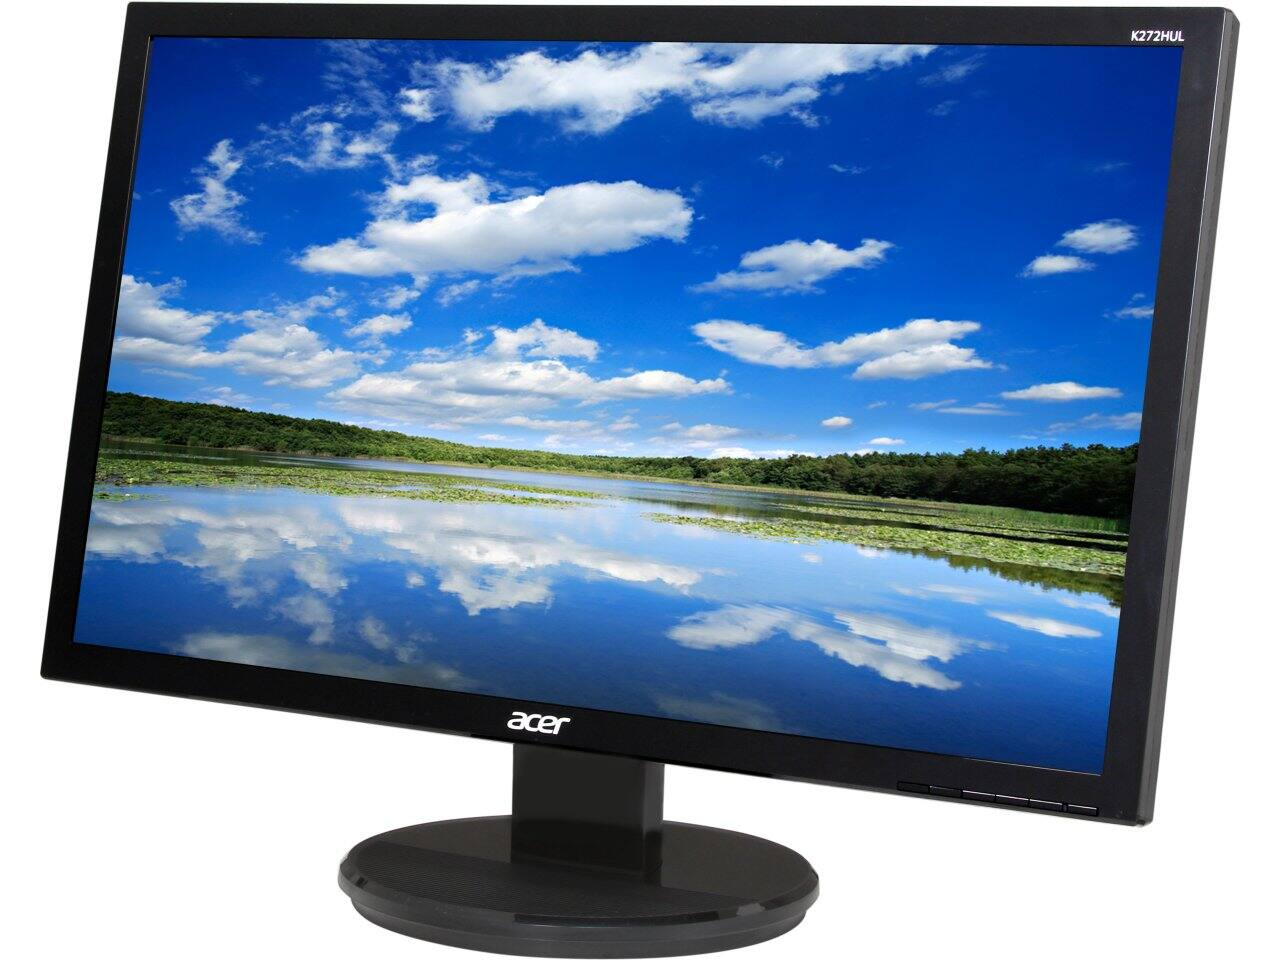 """27"""" Acer K2 Series Black 2560 x 1440 6ms (GTG) IPS Panel HDMI LED Monitor for $244.99 w/ PayPal + S&H & More @ Newegg.com"""